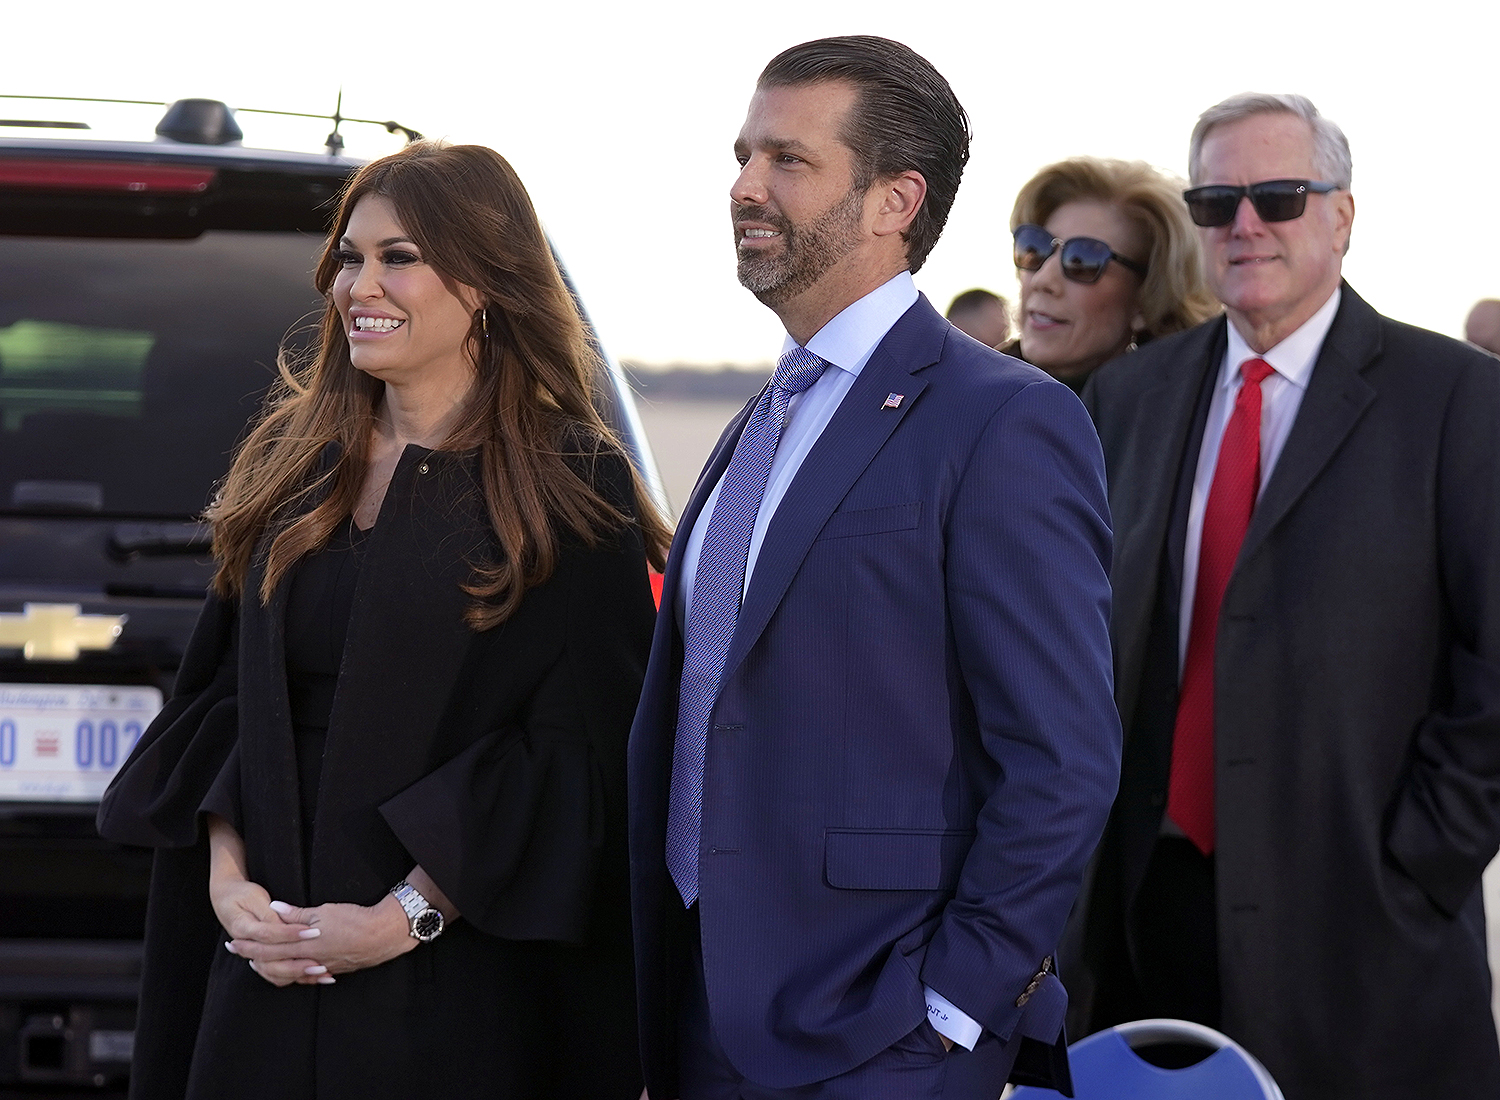 Donald Trump Jr., and his girlfriend Kimberly Guilfoyle, and White House chief of staff Mark Meadows wait for President Donald Trump and First Lady Melania Trump to arrive and board Air Force One for a final time at Andrews Air Force Base, Md Trump, Andrews Air Force Base, United States - 20 Jan 2021